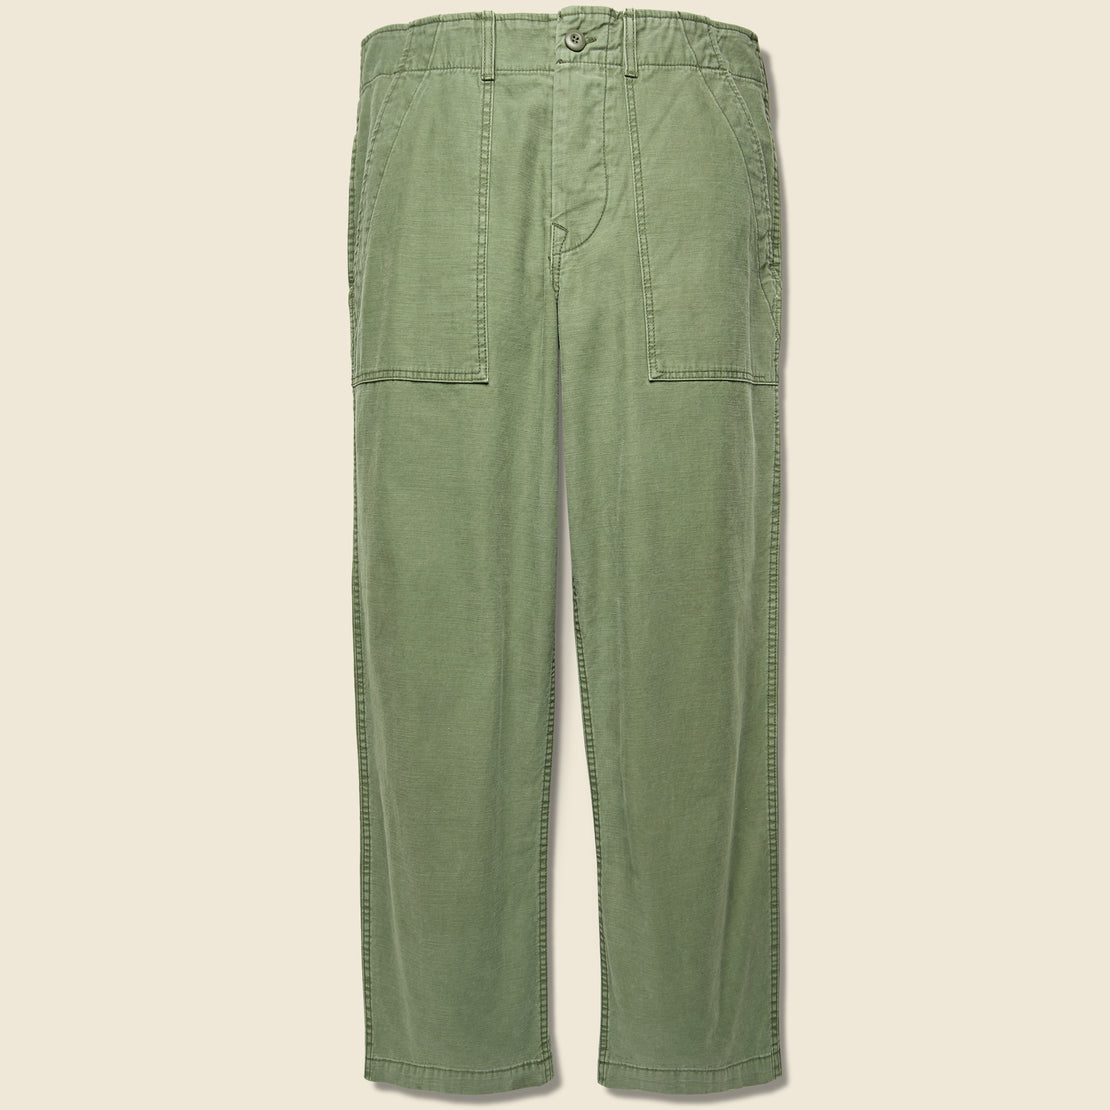 Imogene + Willie Oliver Military Trouser - Fatigue Green